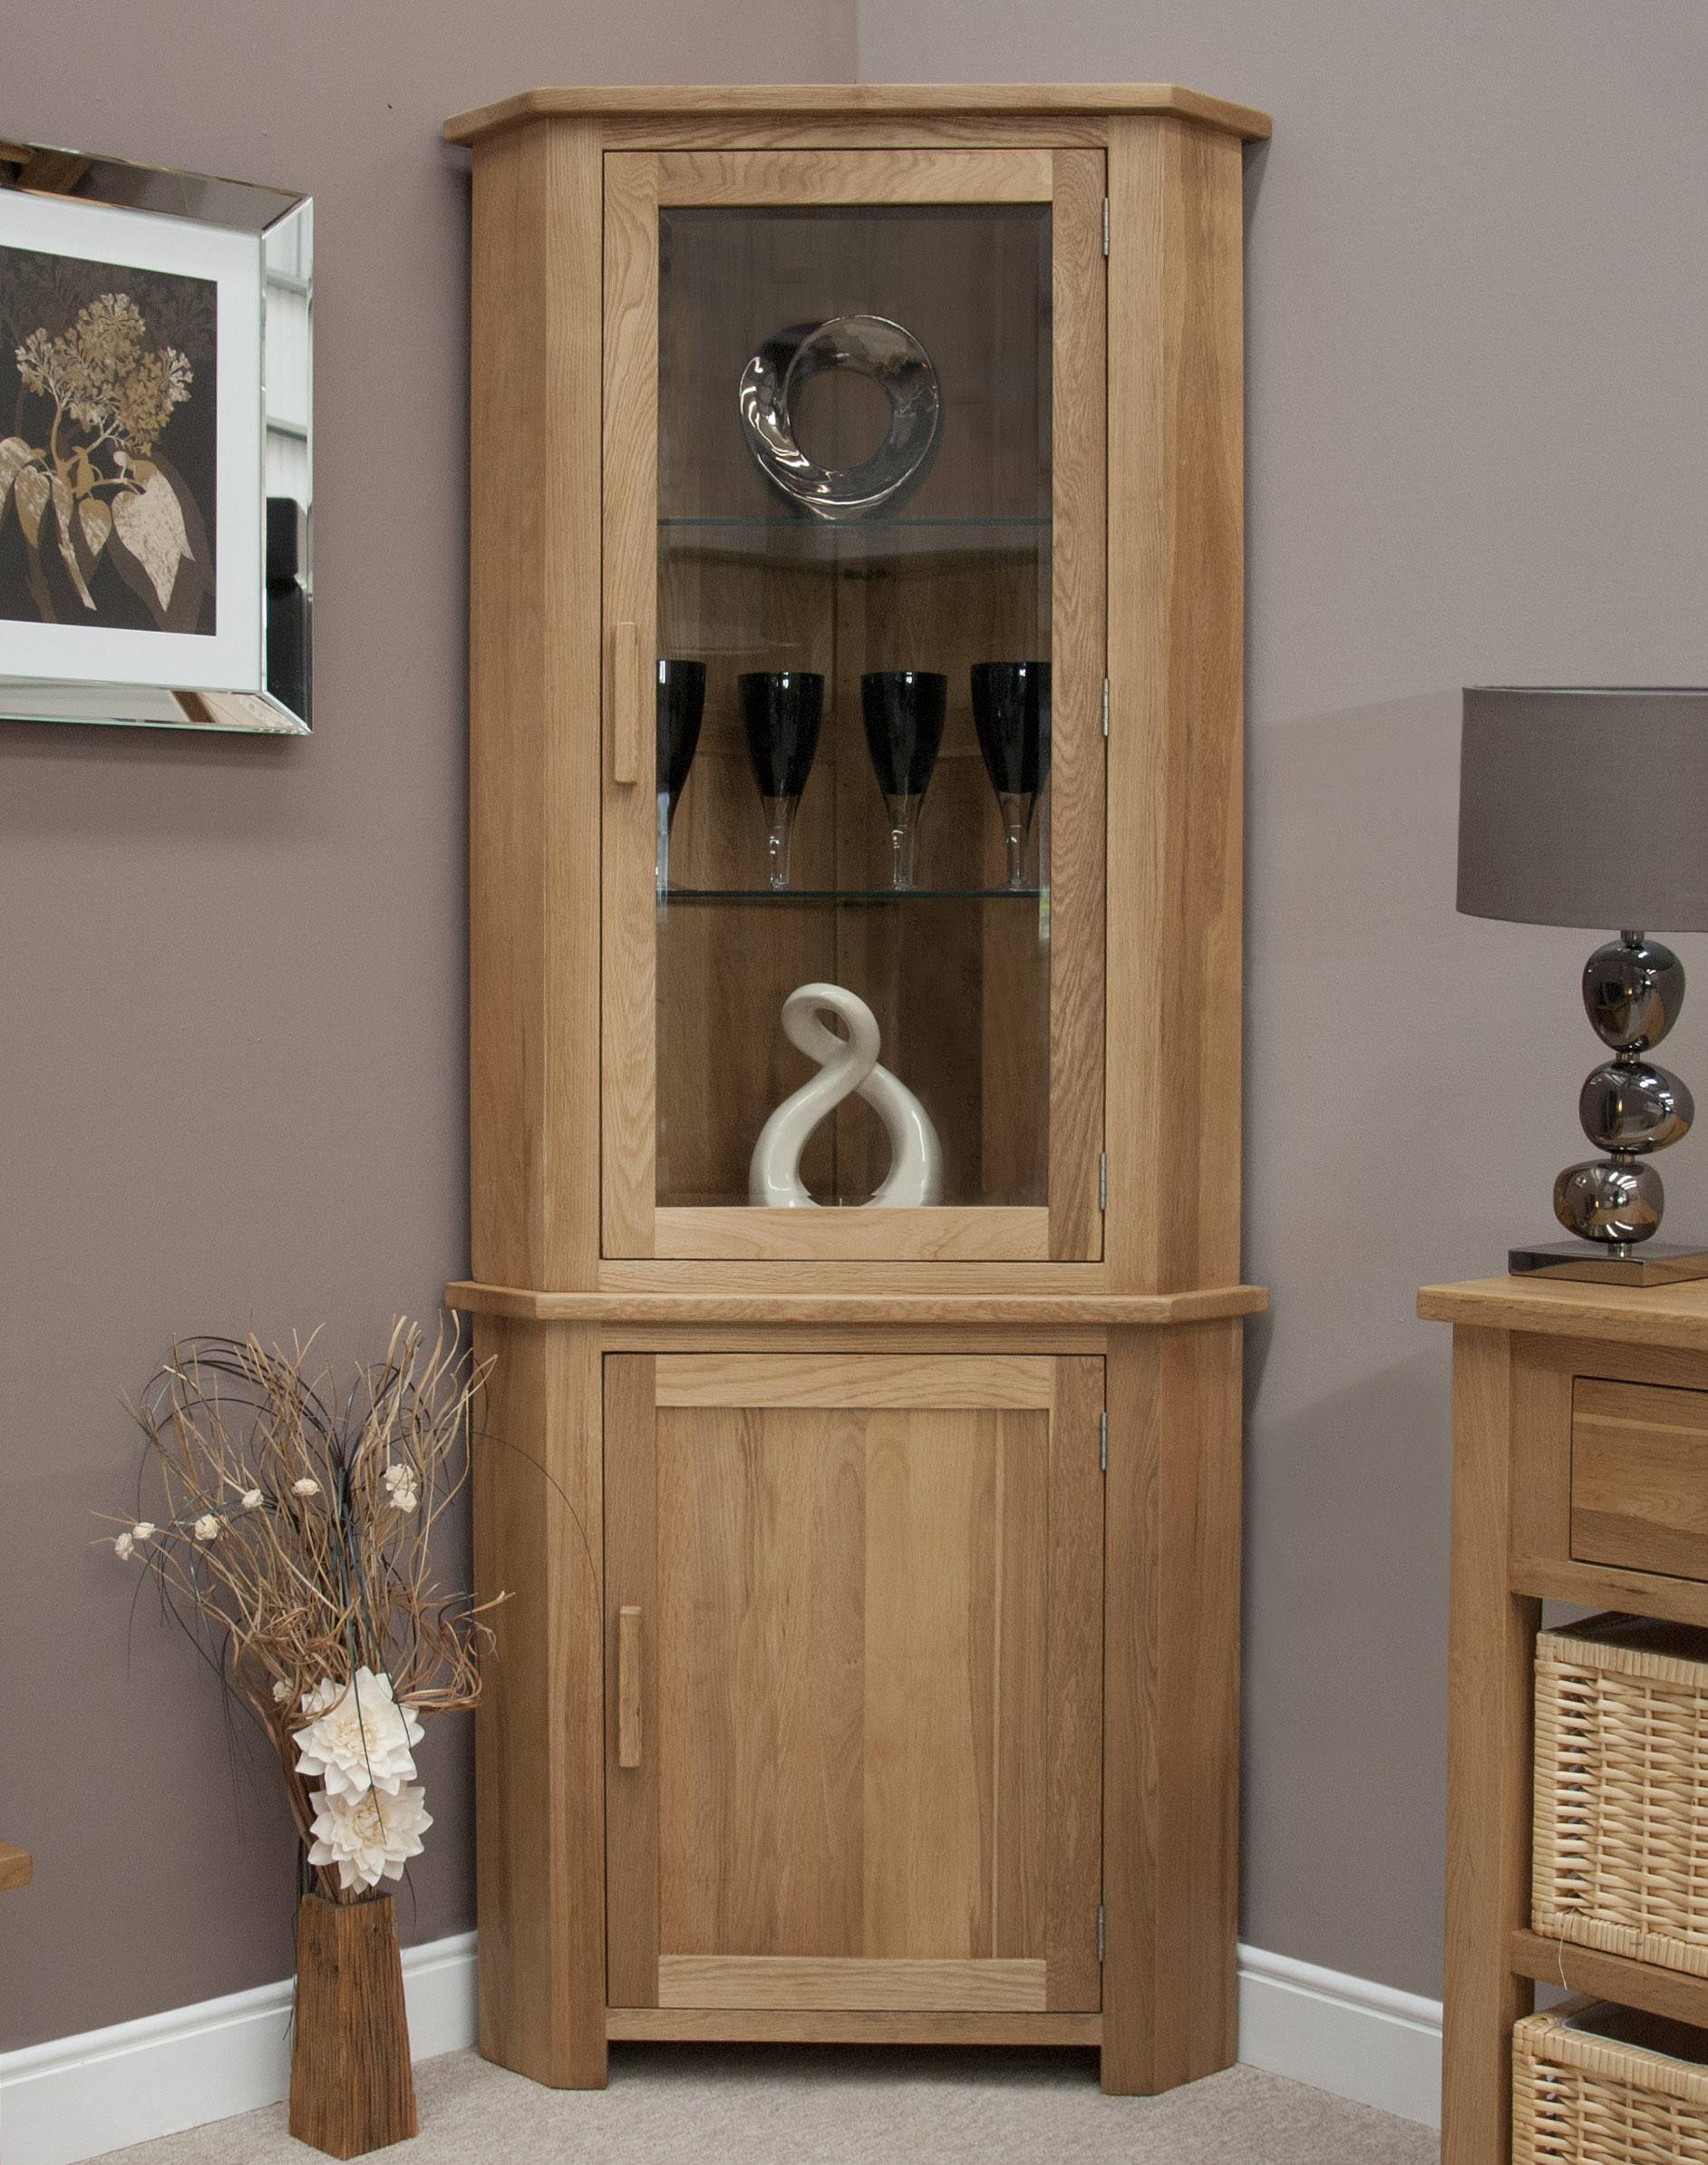 Windsor solid oak furniture corner display cabinet unit with light ebay for Corner wall cabinets living room